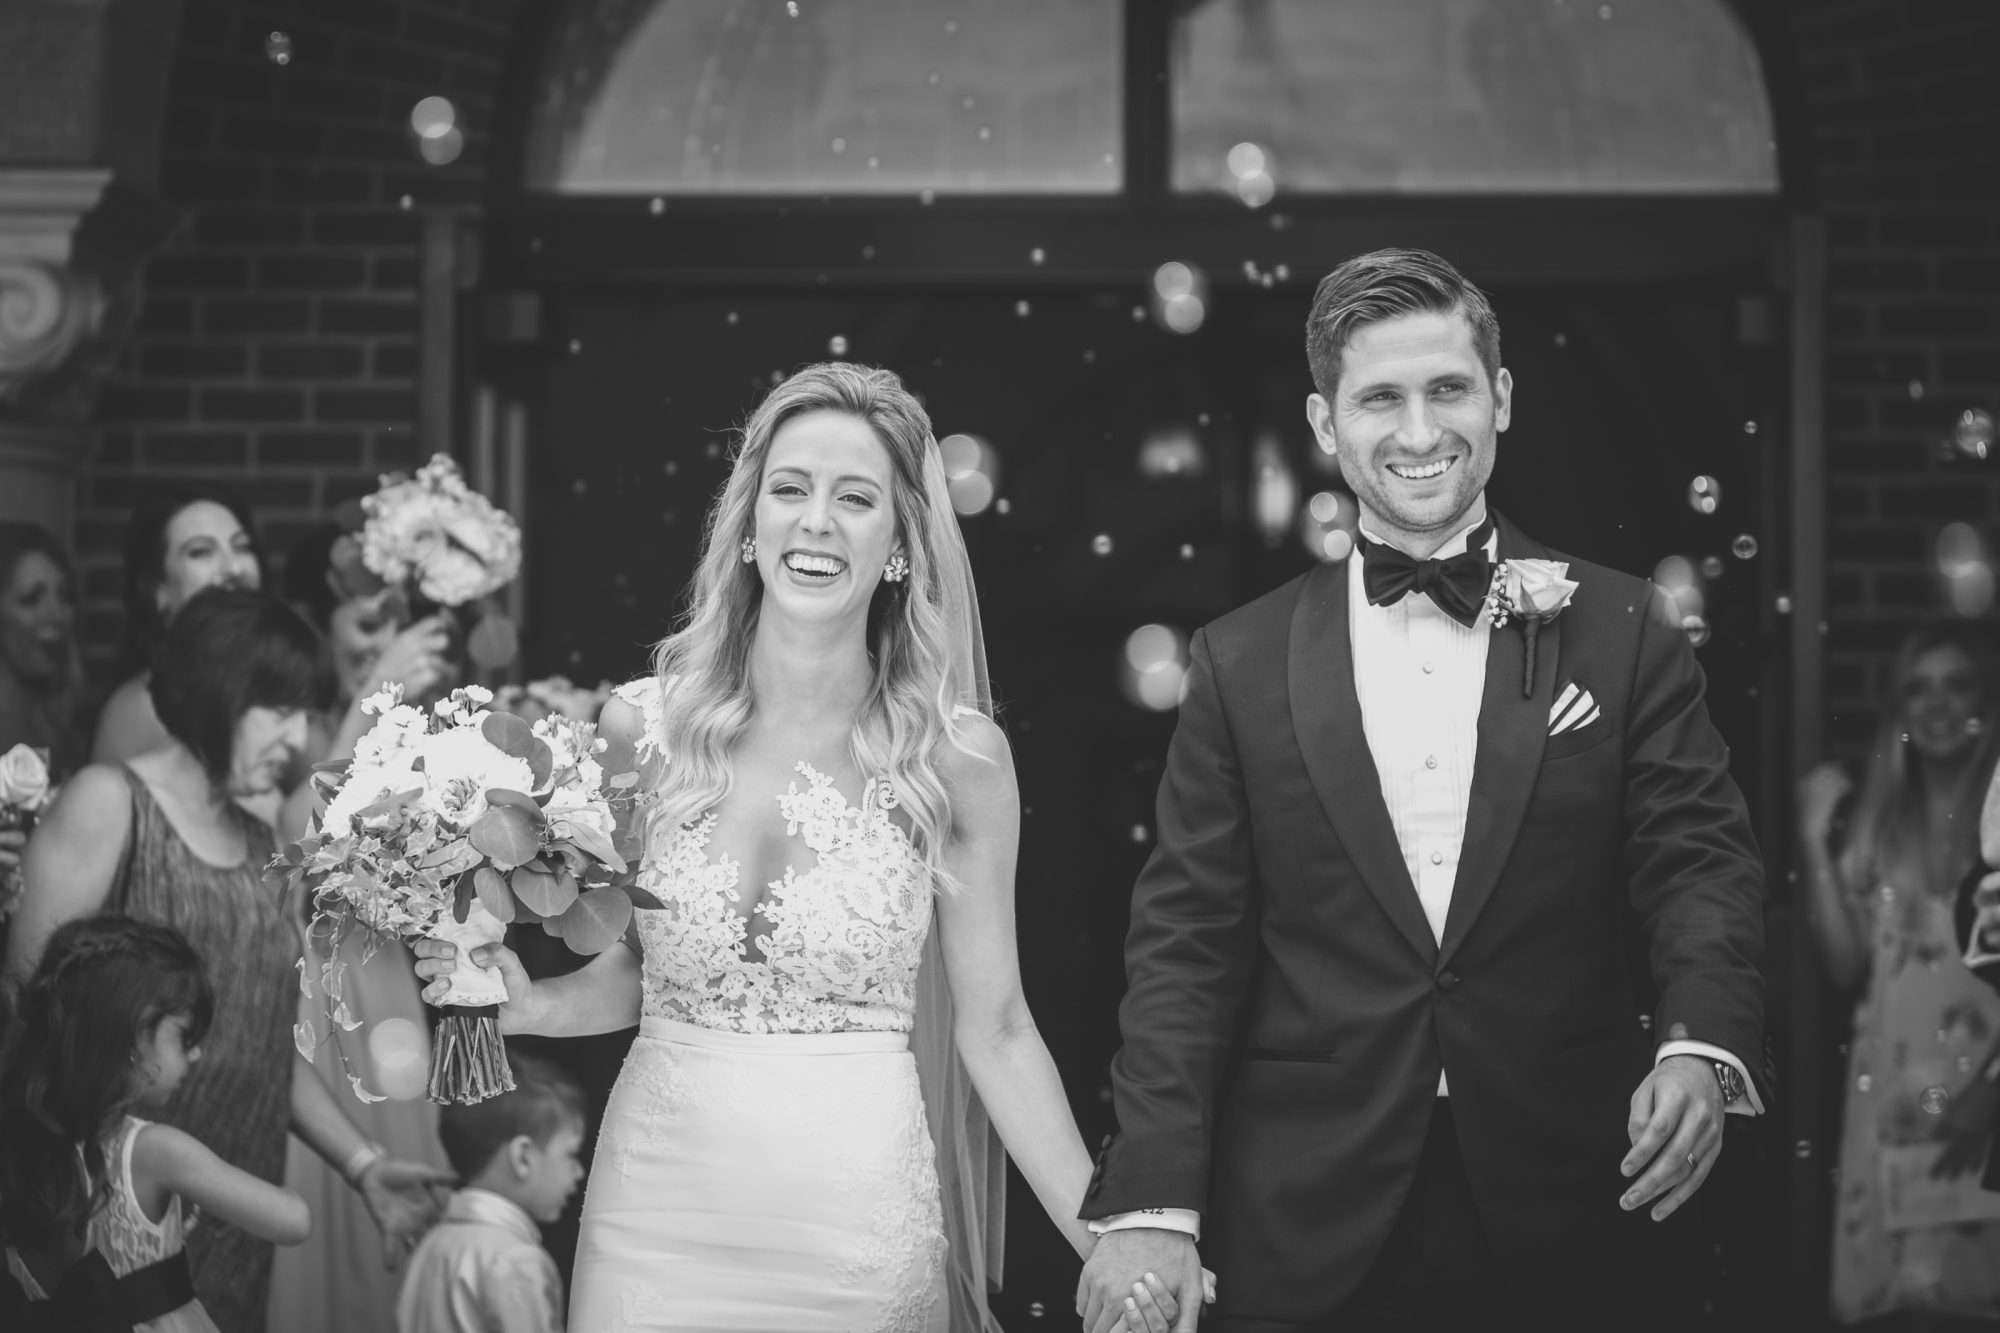 Hitched in Style | A Wedding at the Athletic Club of Columbus 2